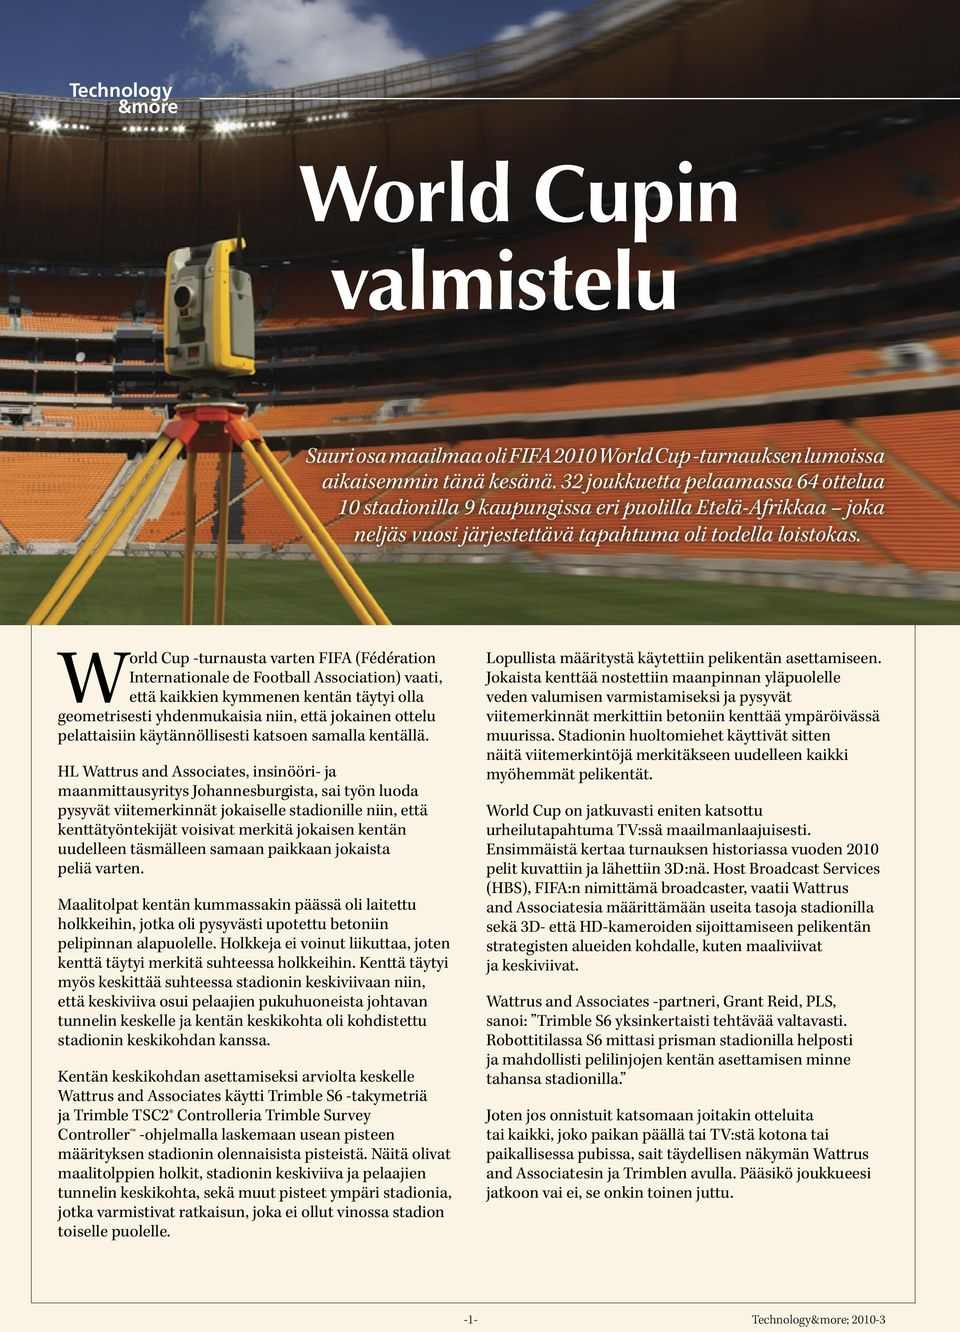 World Cup -turnausta varten FIFA (Fédération Internationale de Football Association) vaati, että kaikkien kymmenen kentän täytyi olla geometrisesti yhdenmukaisia niin, että jokainen ottelu